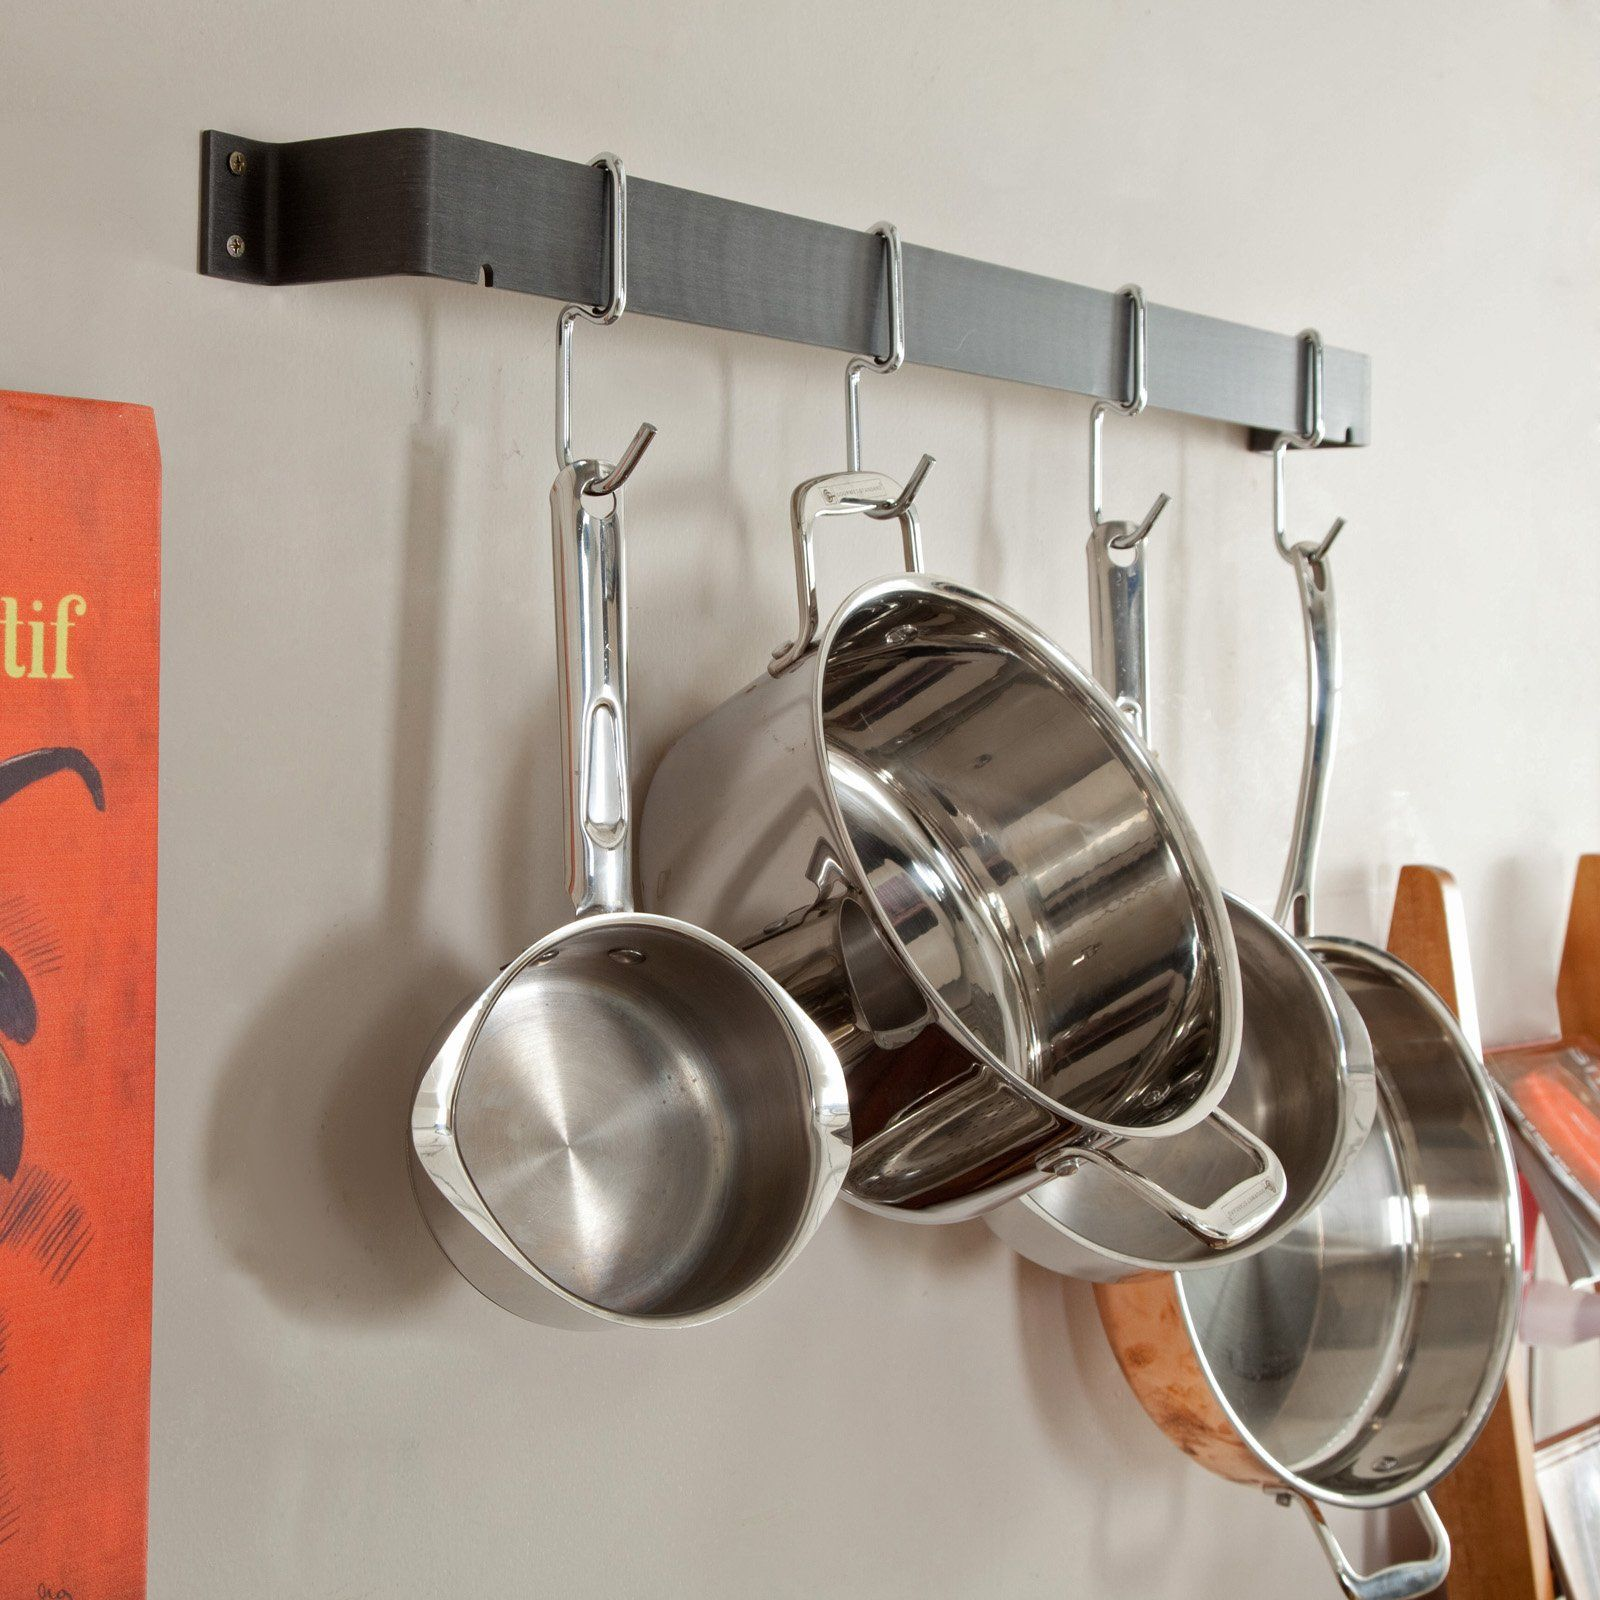 pot organizer pots pans product itm pan hanging hanger storage rack new kitchen cookware features